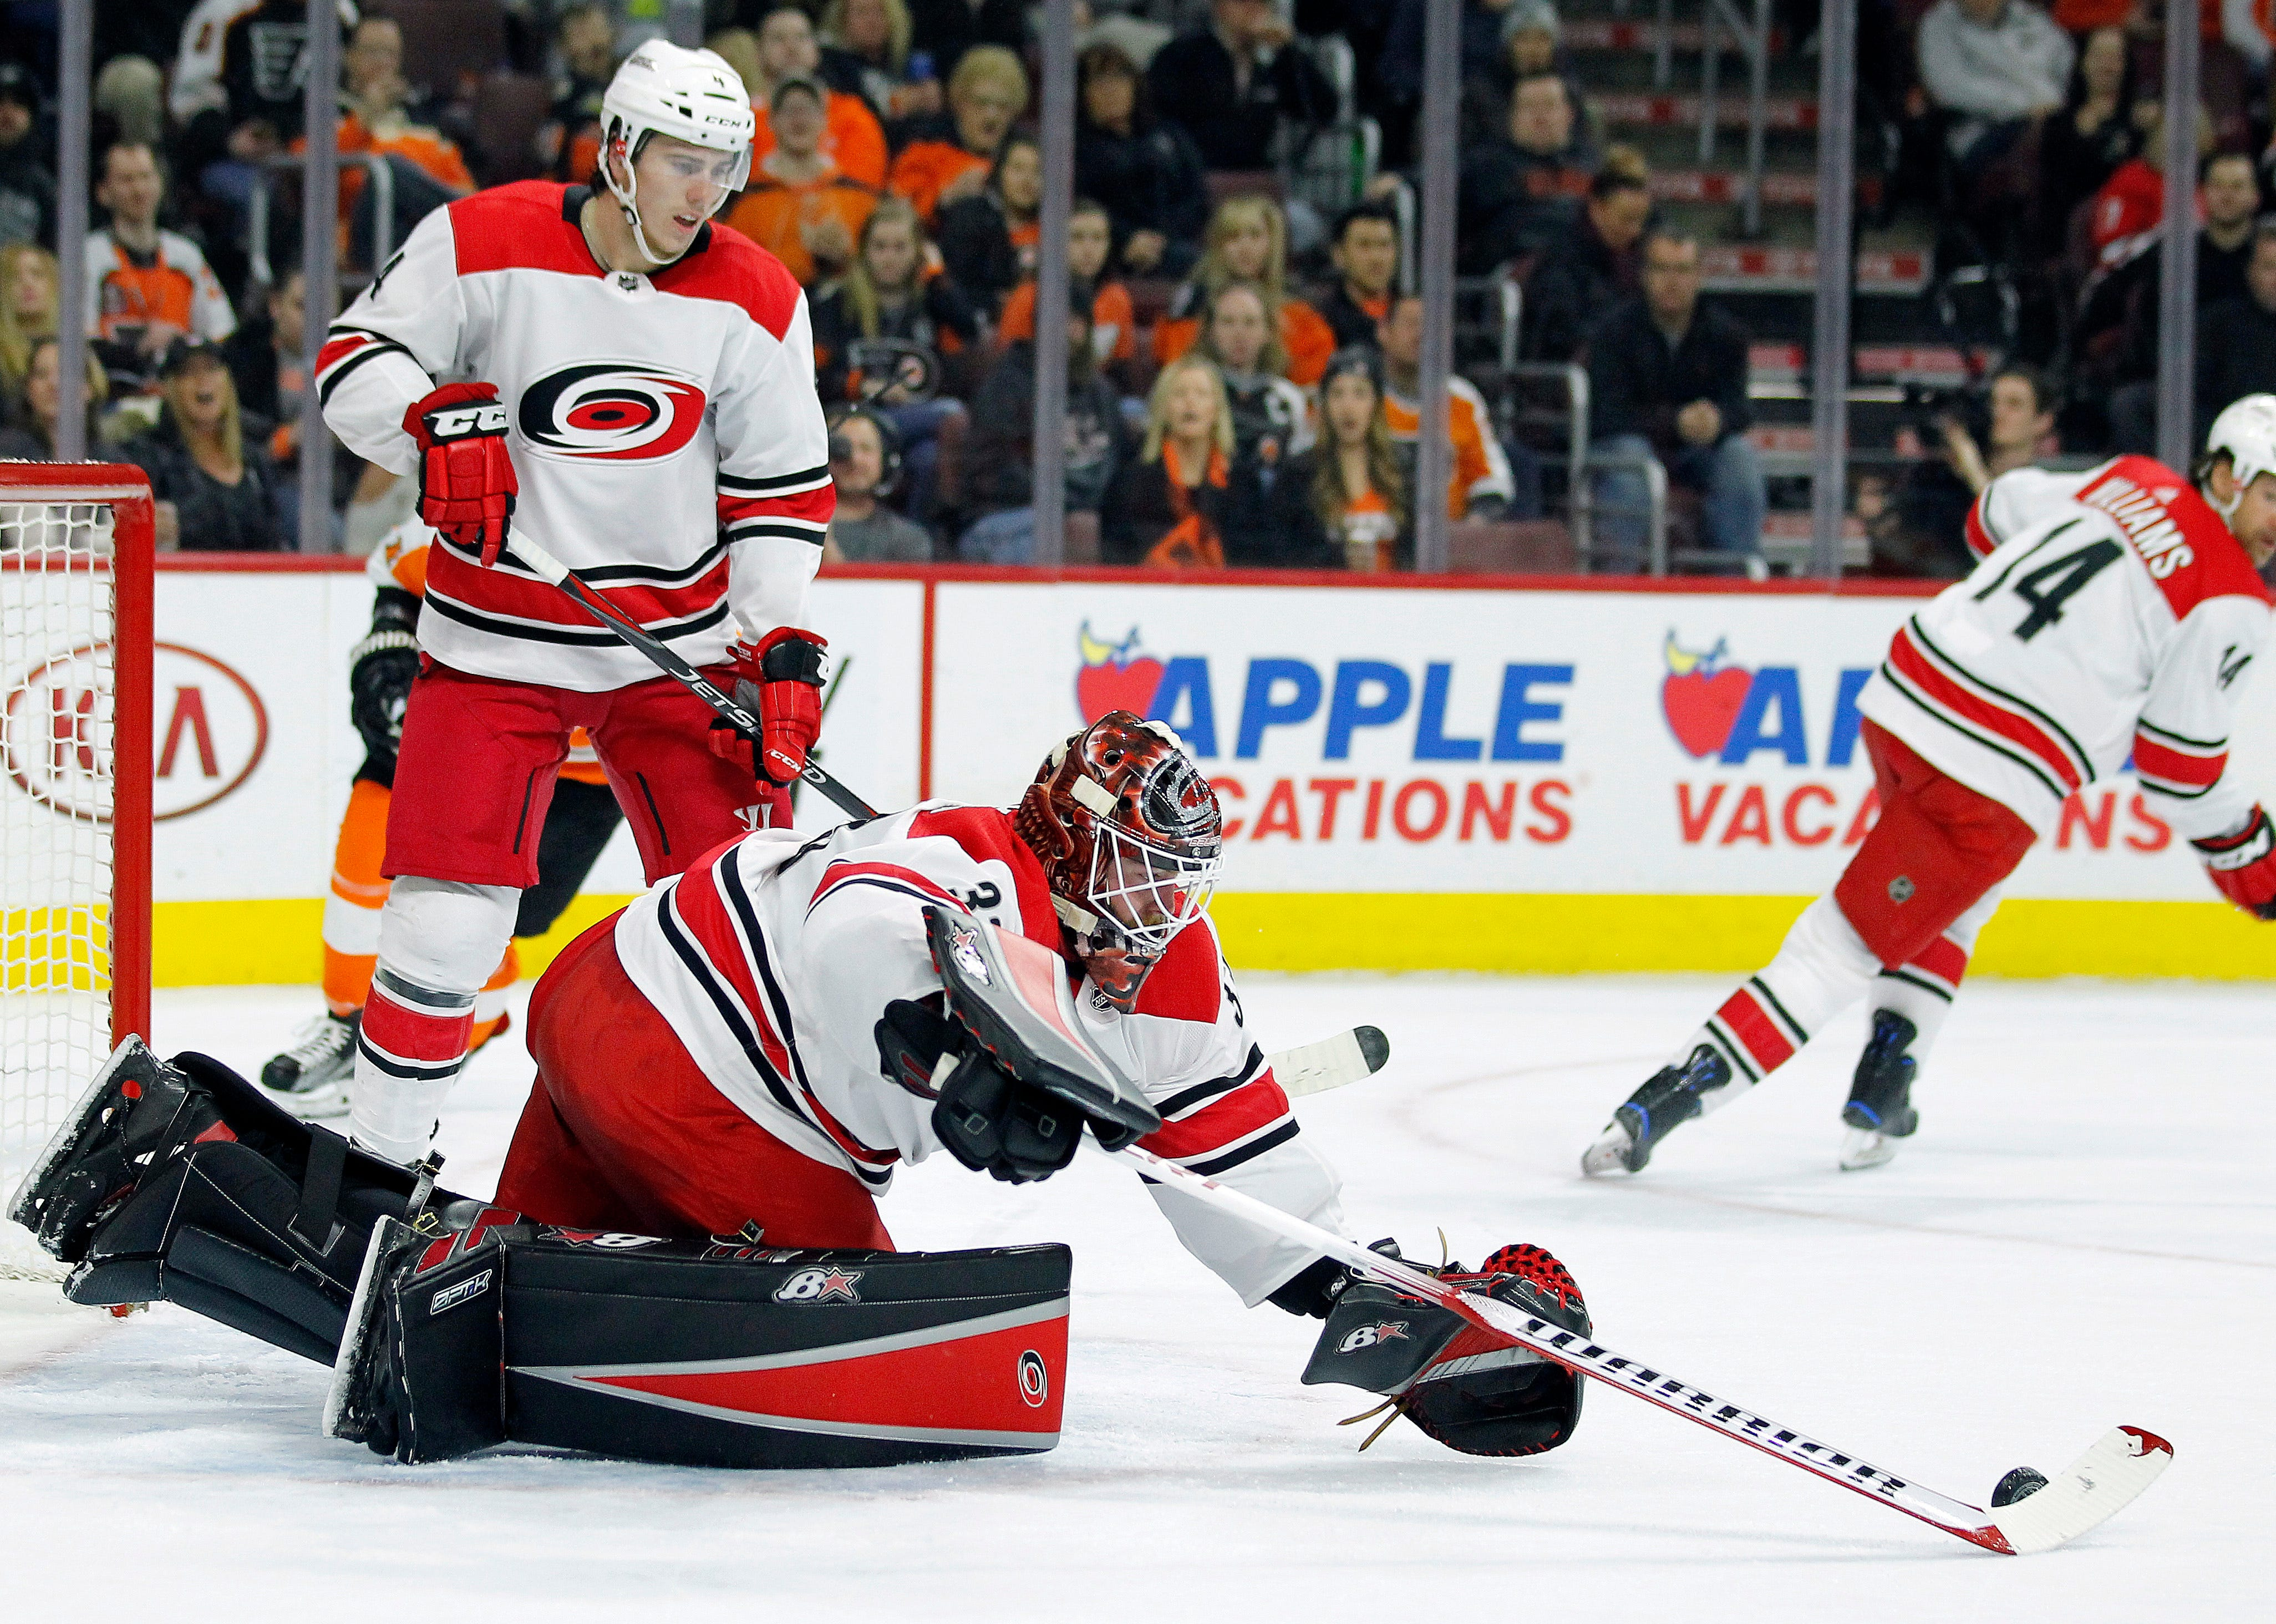 Voracek's goal leads Flyers to crucial win over Hurricanes